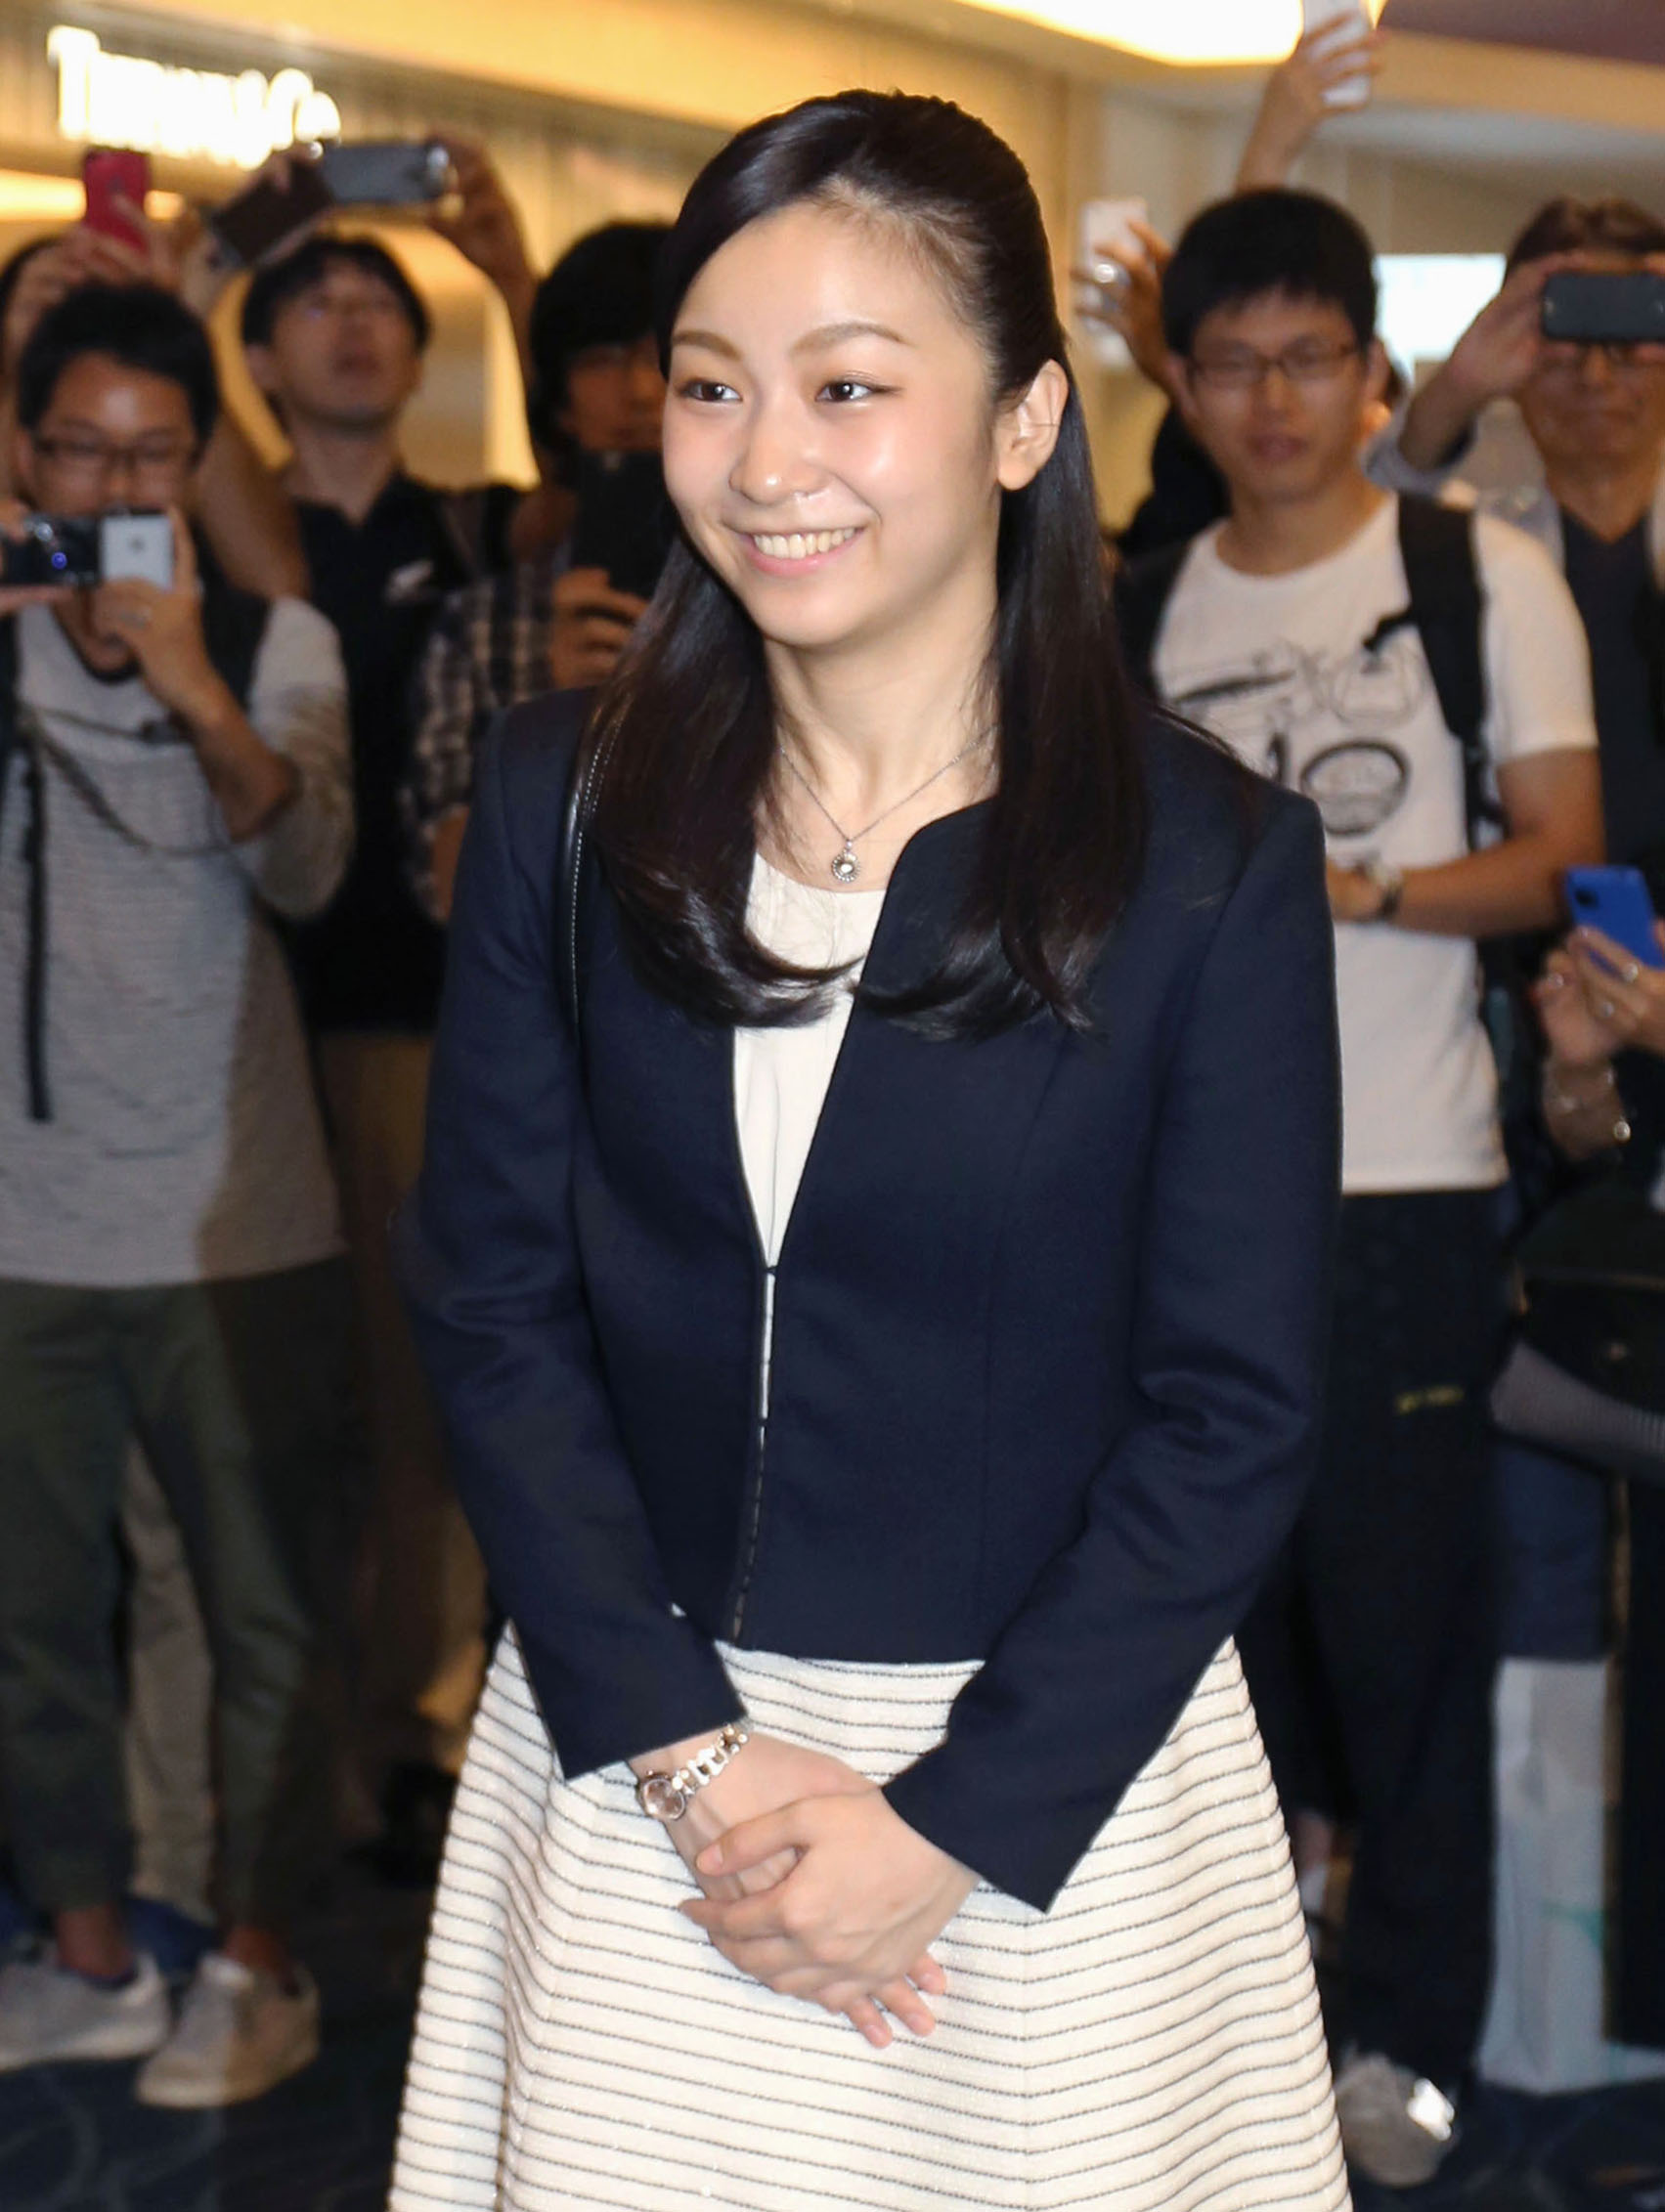 Princess Kako departs for studying at University of Leeds